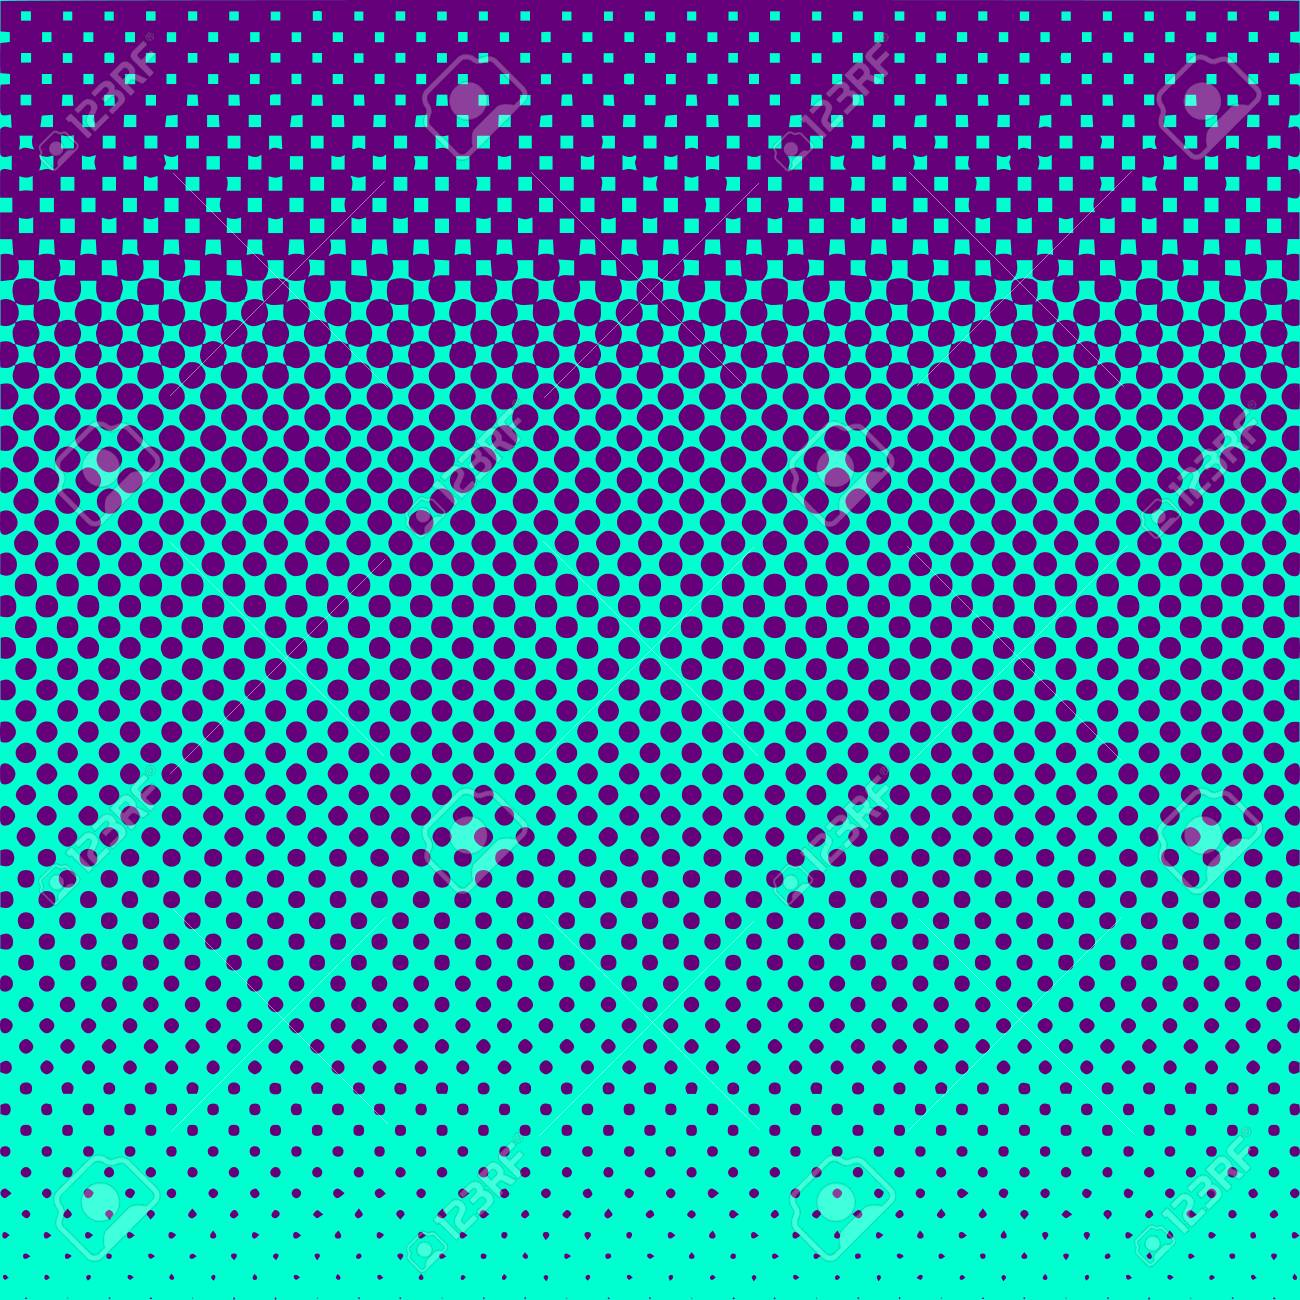 Halftone Abstract Background Purple and Green Vector - 47260183